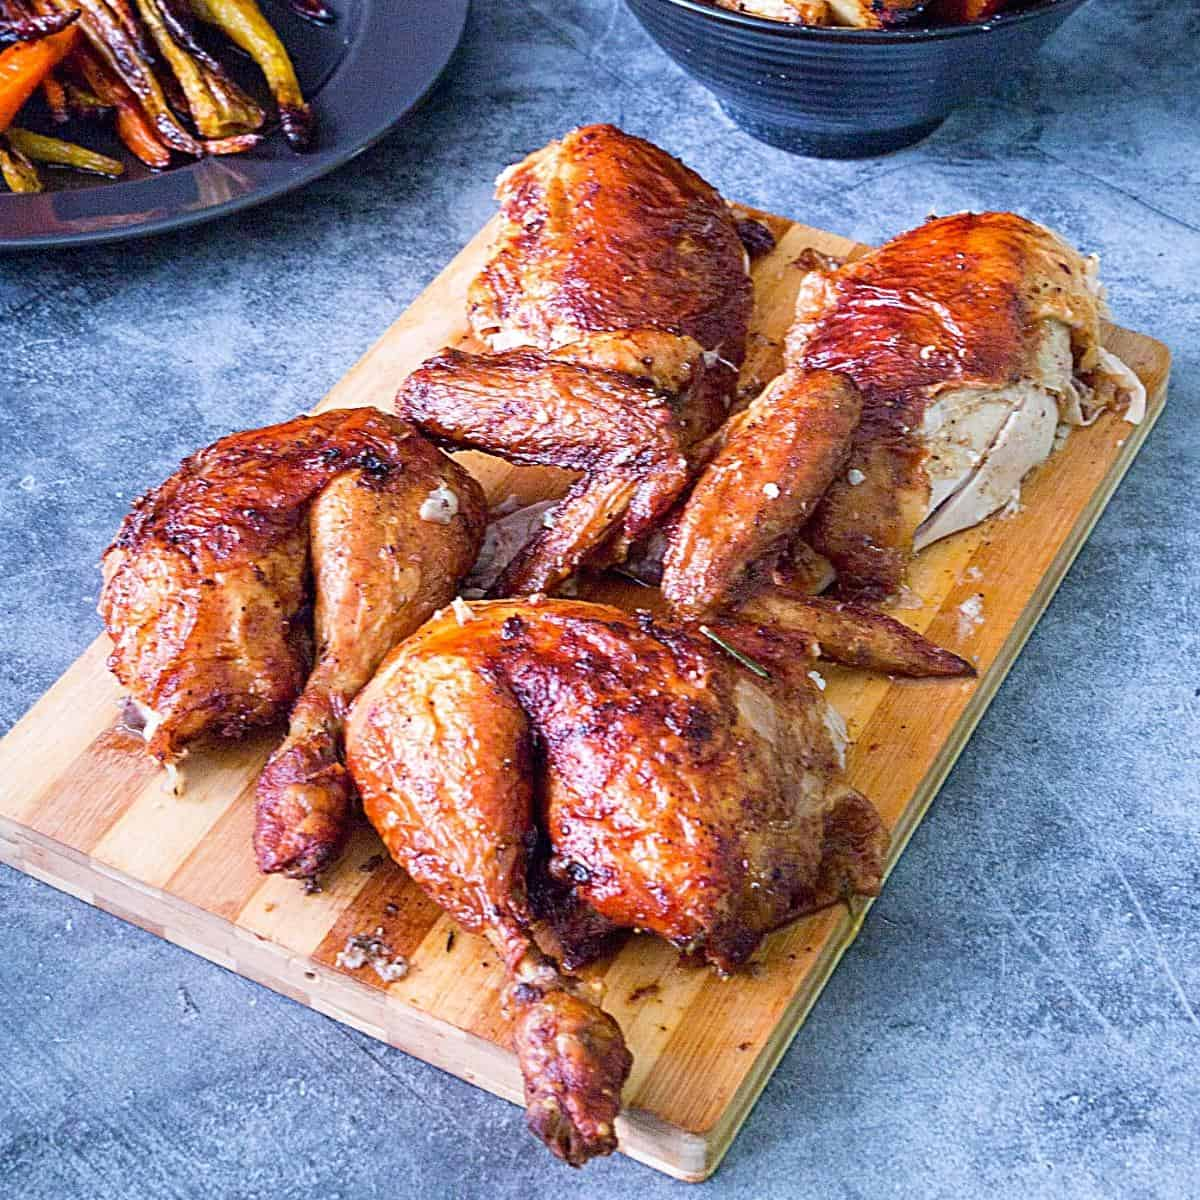 A carved roasted chicken in the oven.